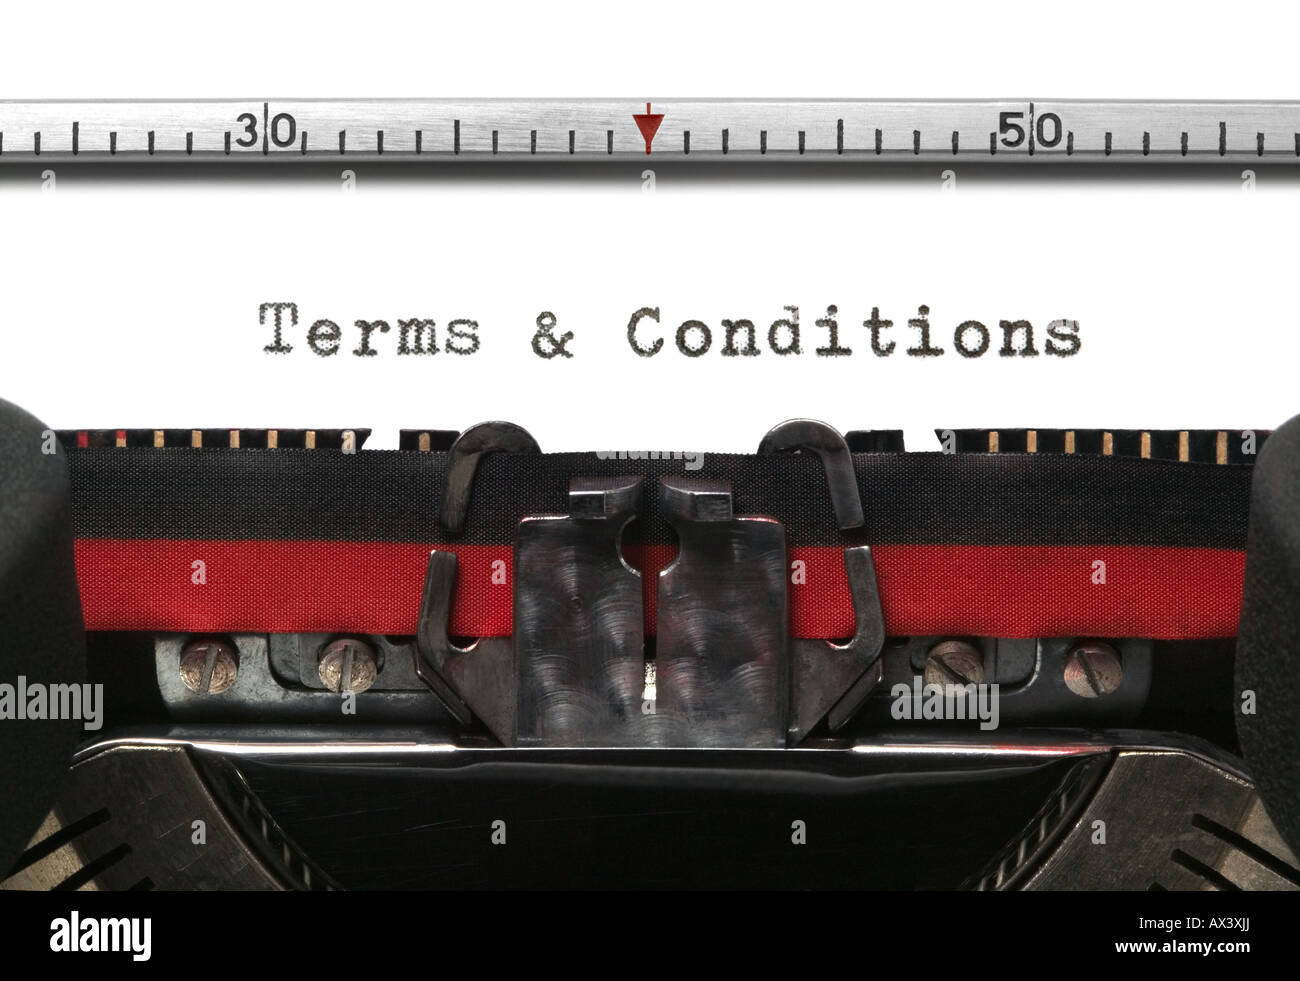 Terms Conditions on an old typewriter in genuine typescript - Stock Image